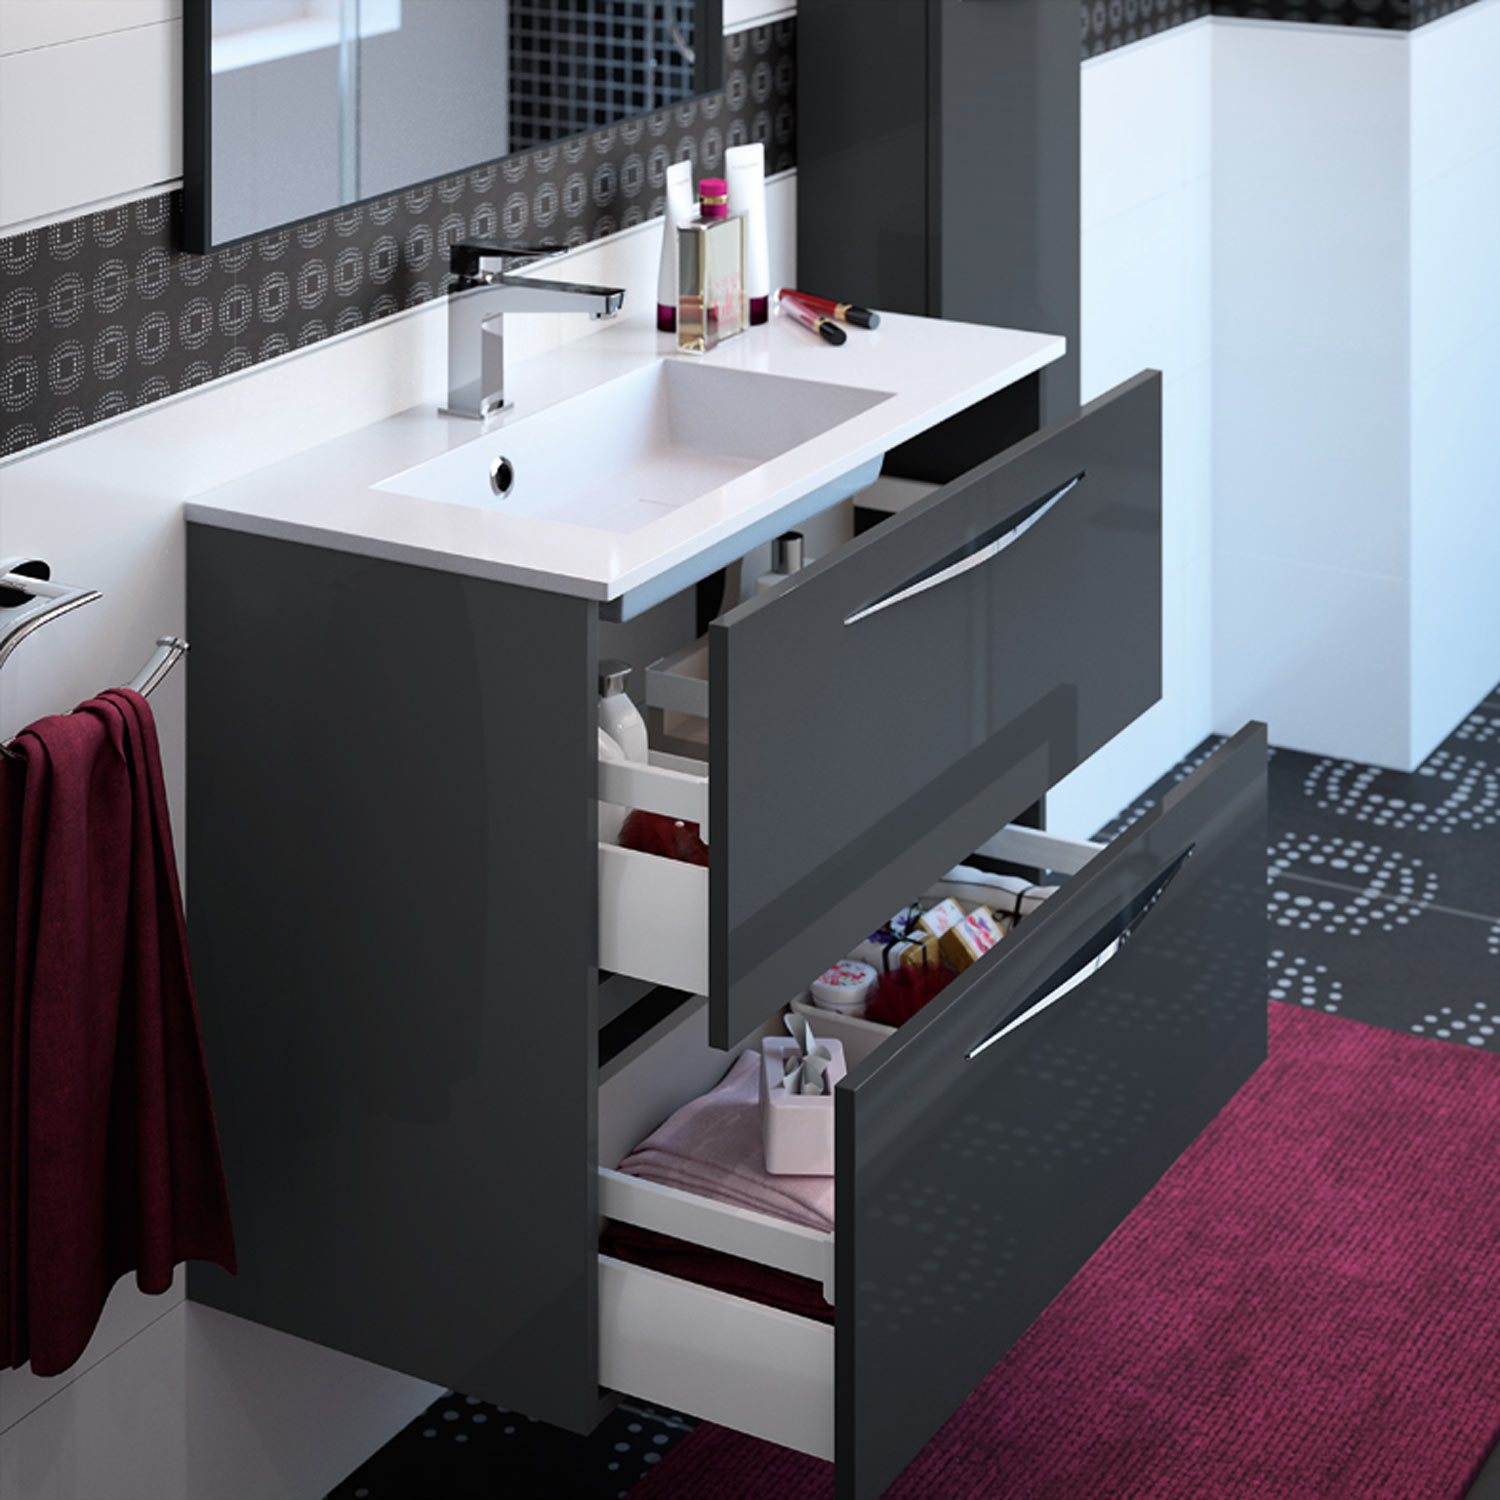 slim meubles de salle de bains baignoires fabricant fran ais cedam. Black Bedroom Furniture Sets. Home Design Ideas